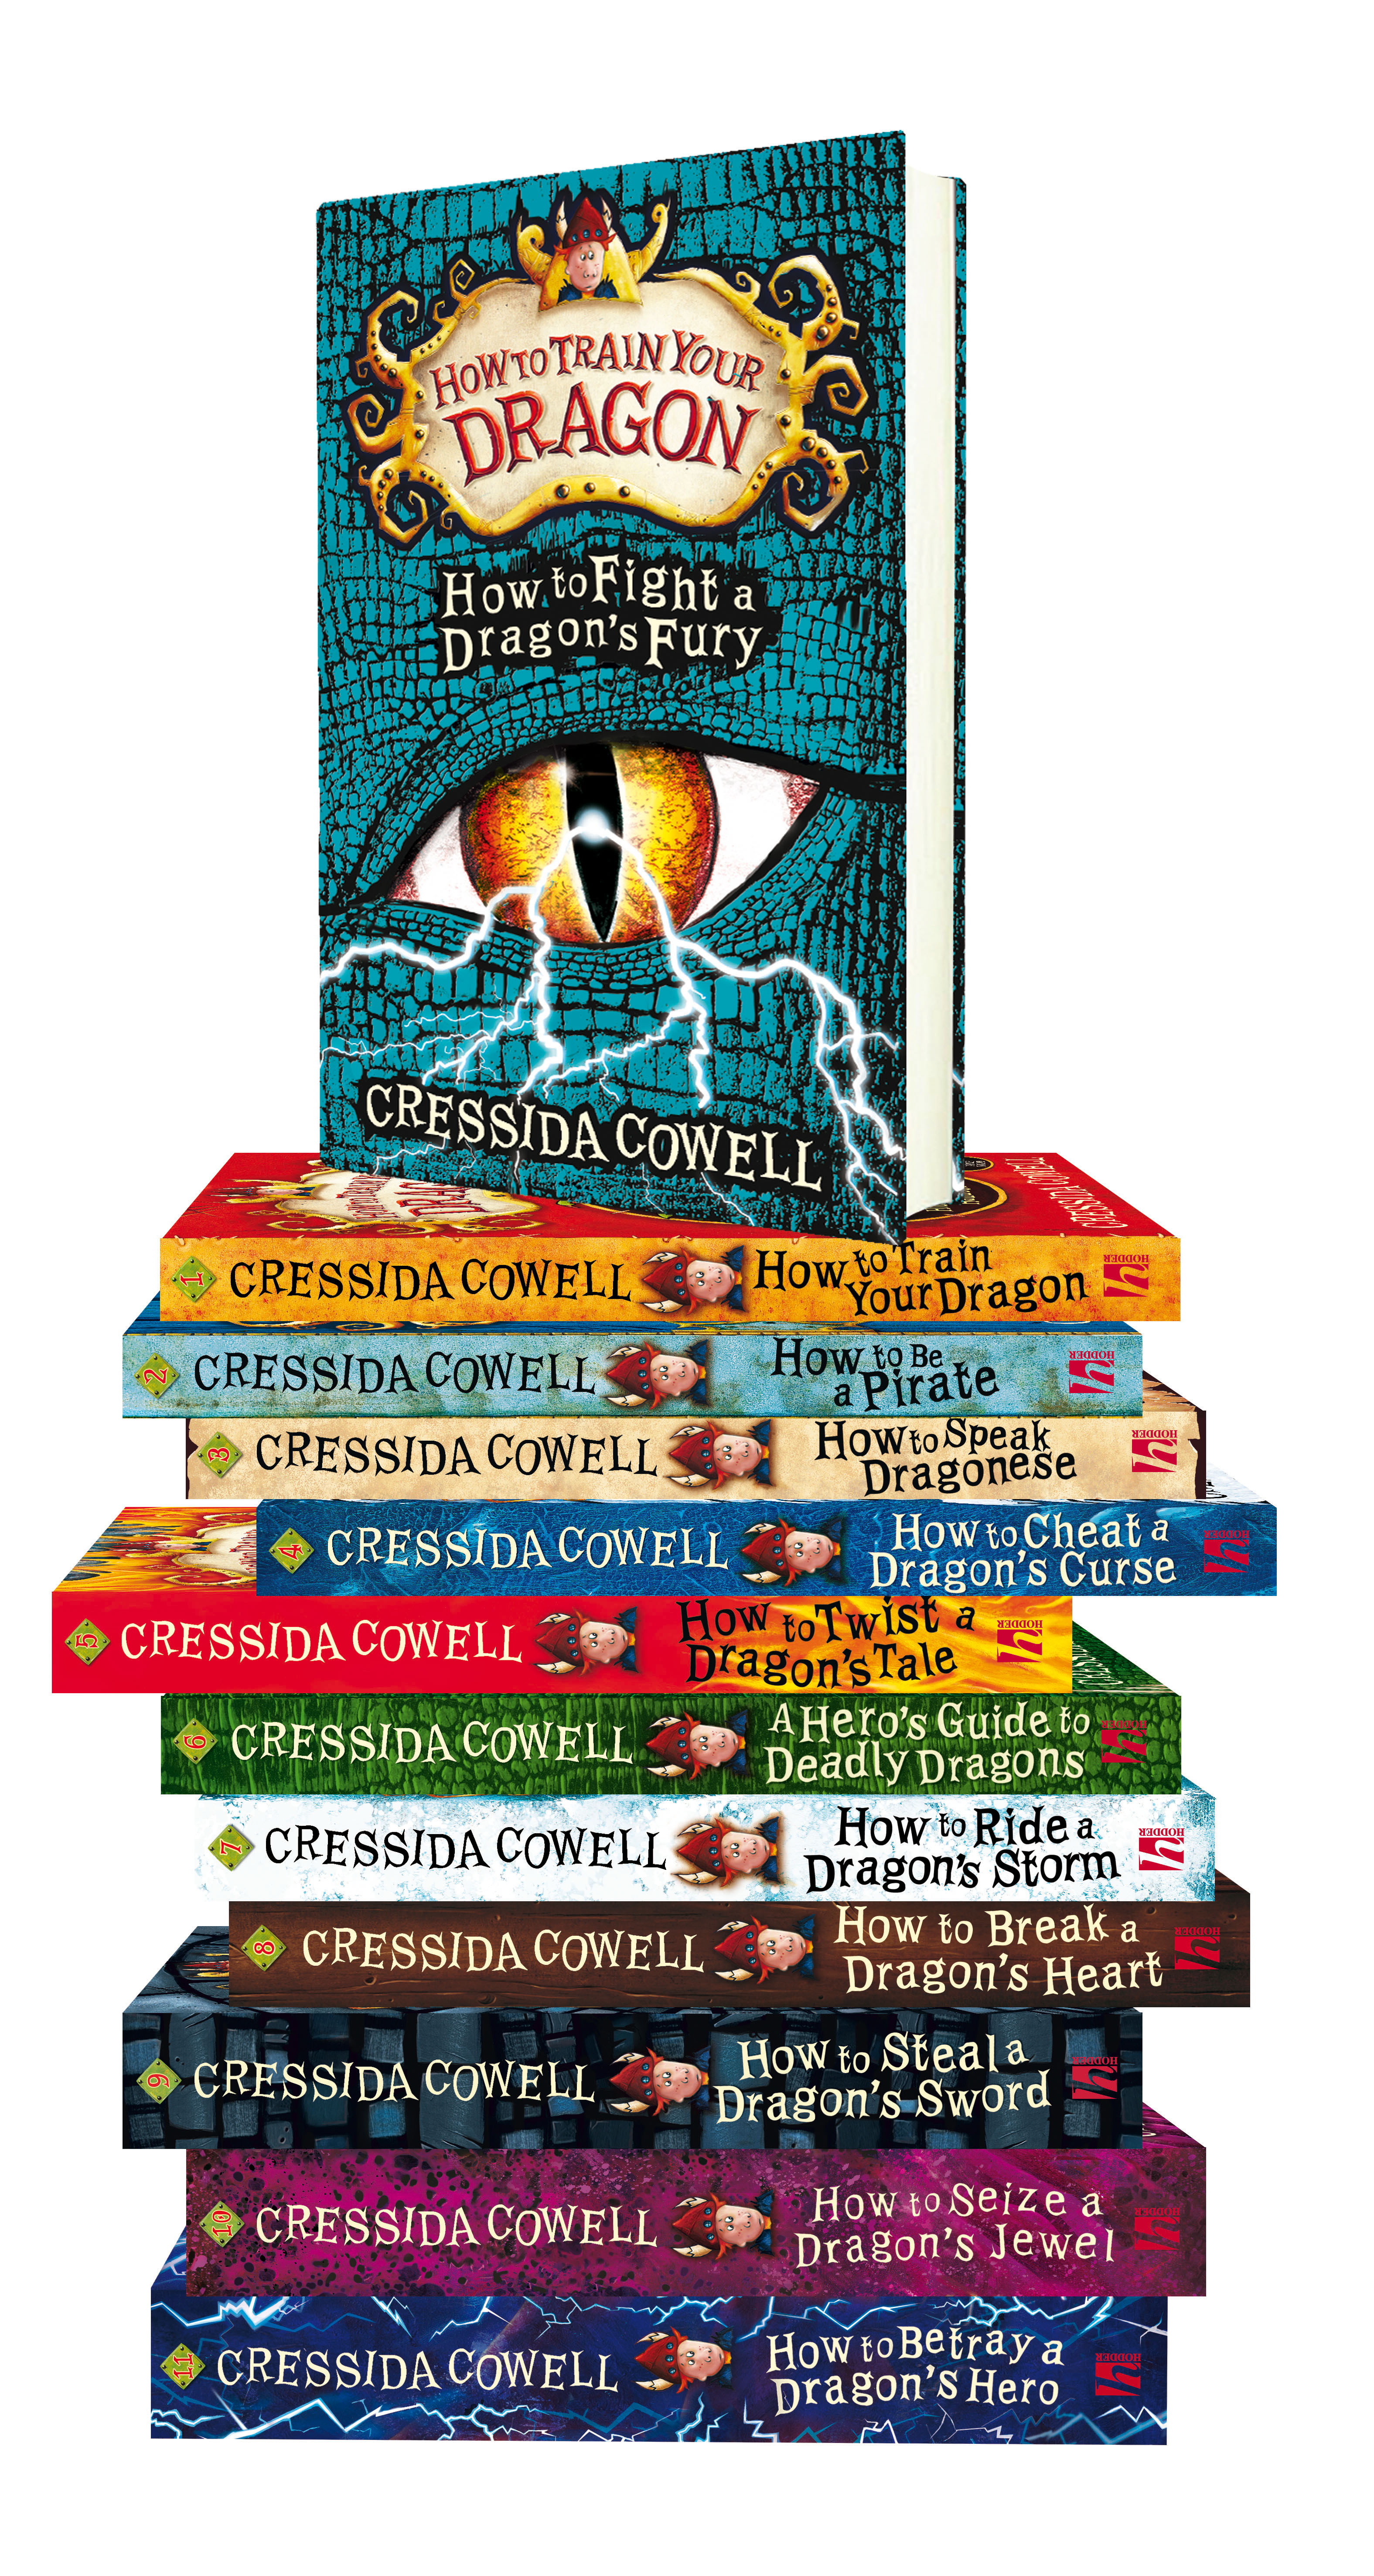 Lot 4 - Be part of a Cressida Cowell story, How to Train Your Dragon author/illustrator